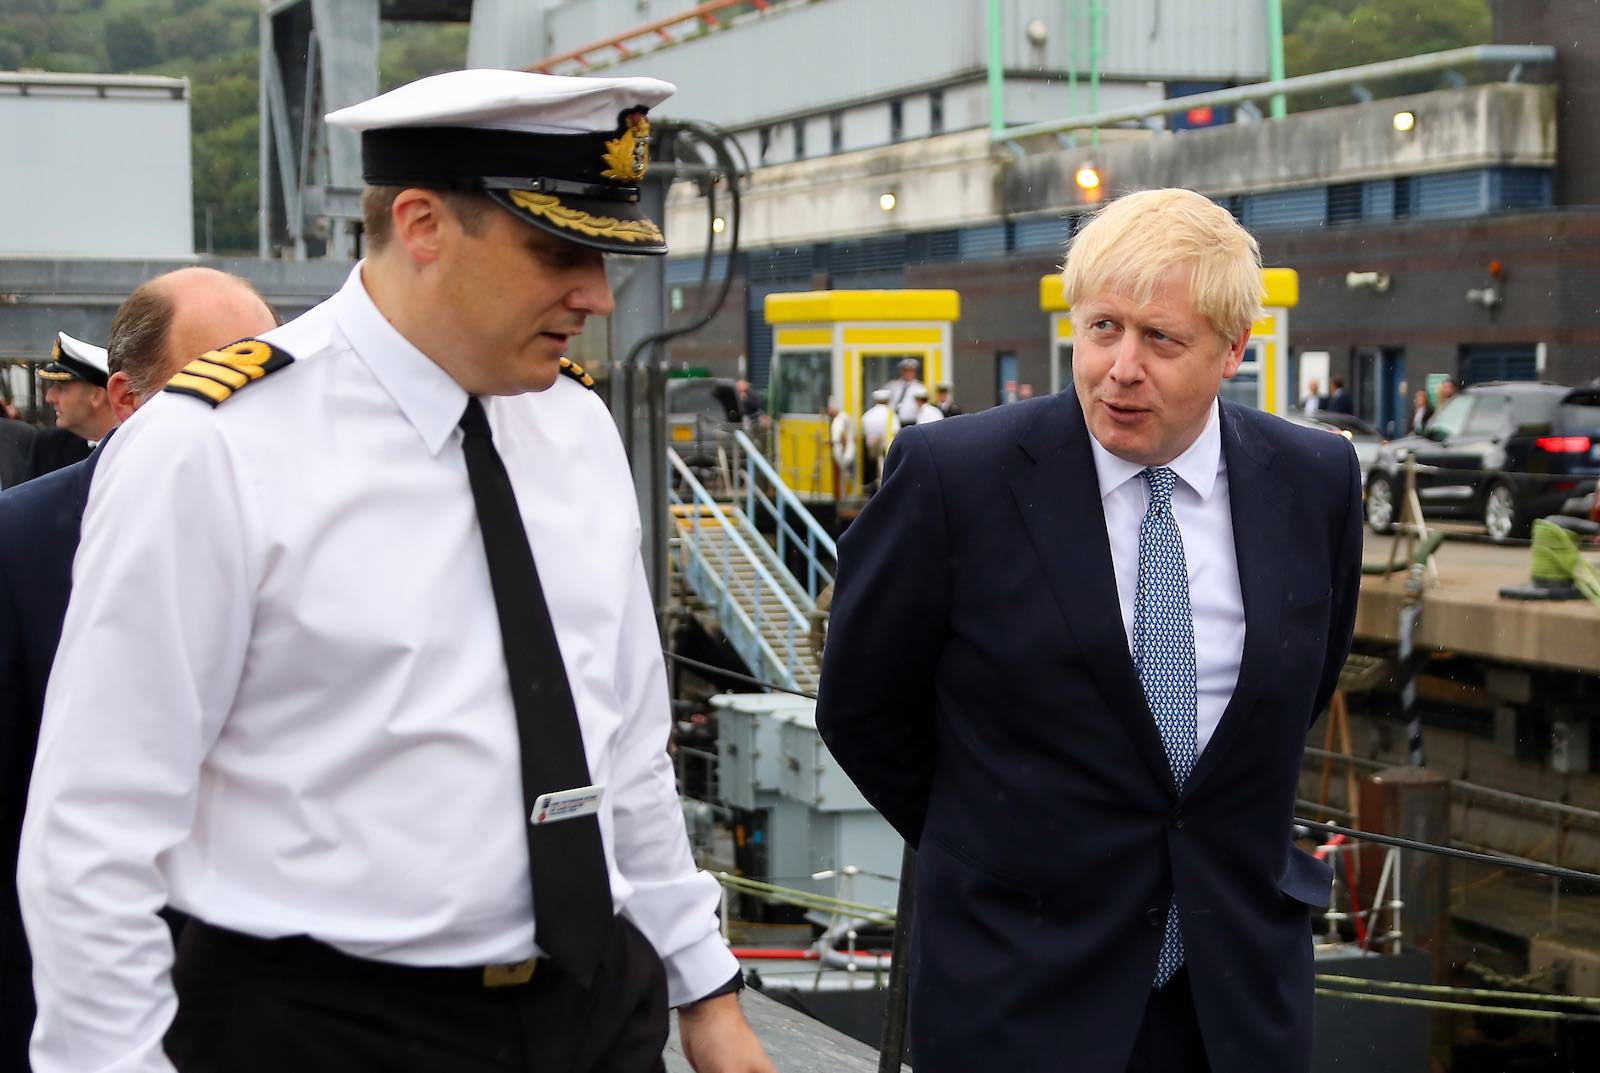 Boris Johnson has abandoned any pretence that his type of Brexit would exclude security and defence matters (Photo: UK Ministry of Defence)